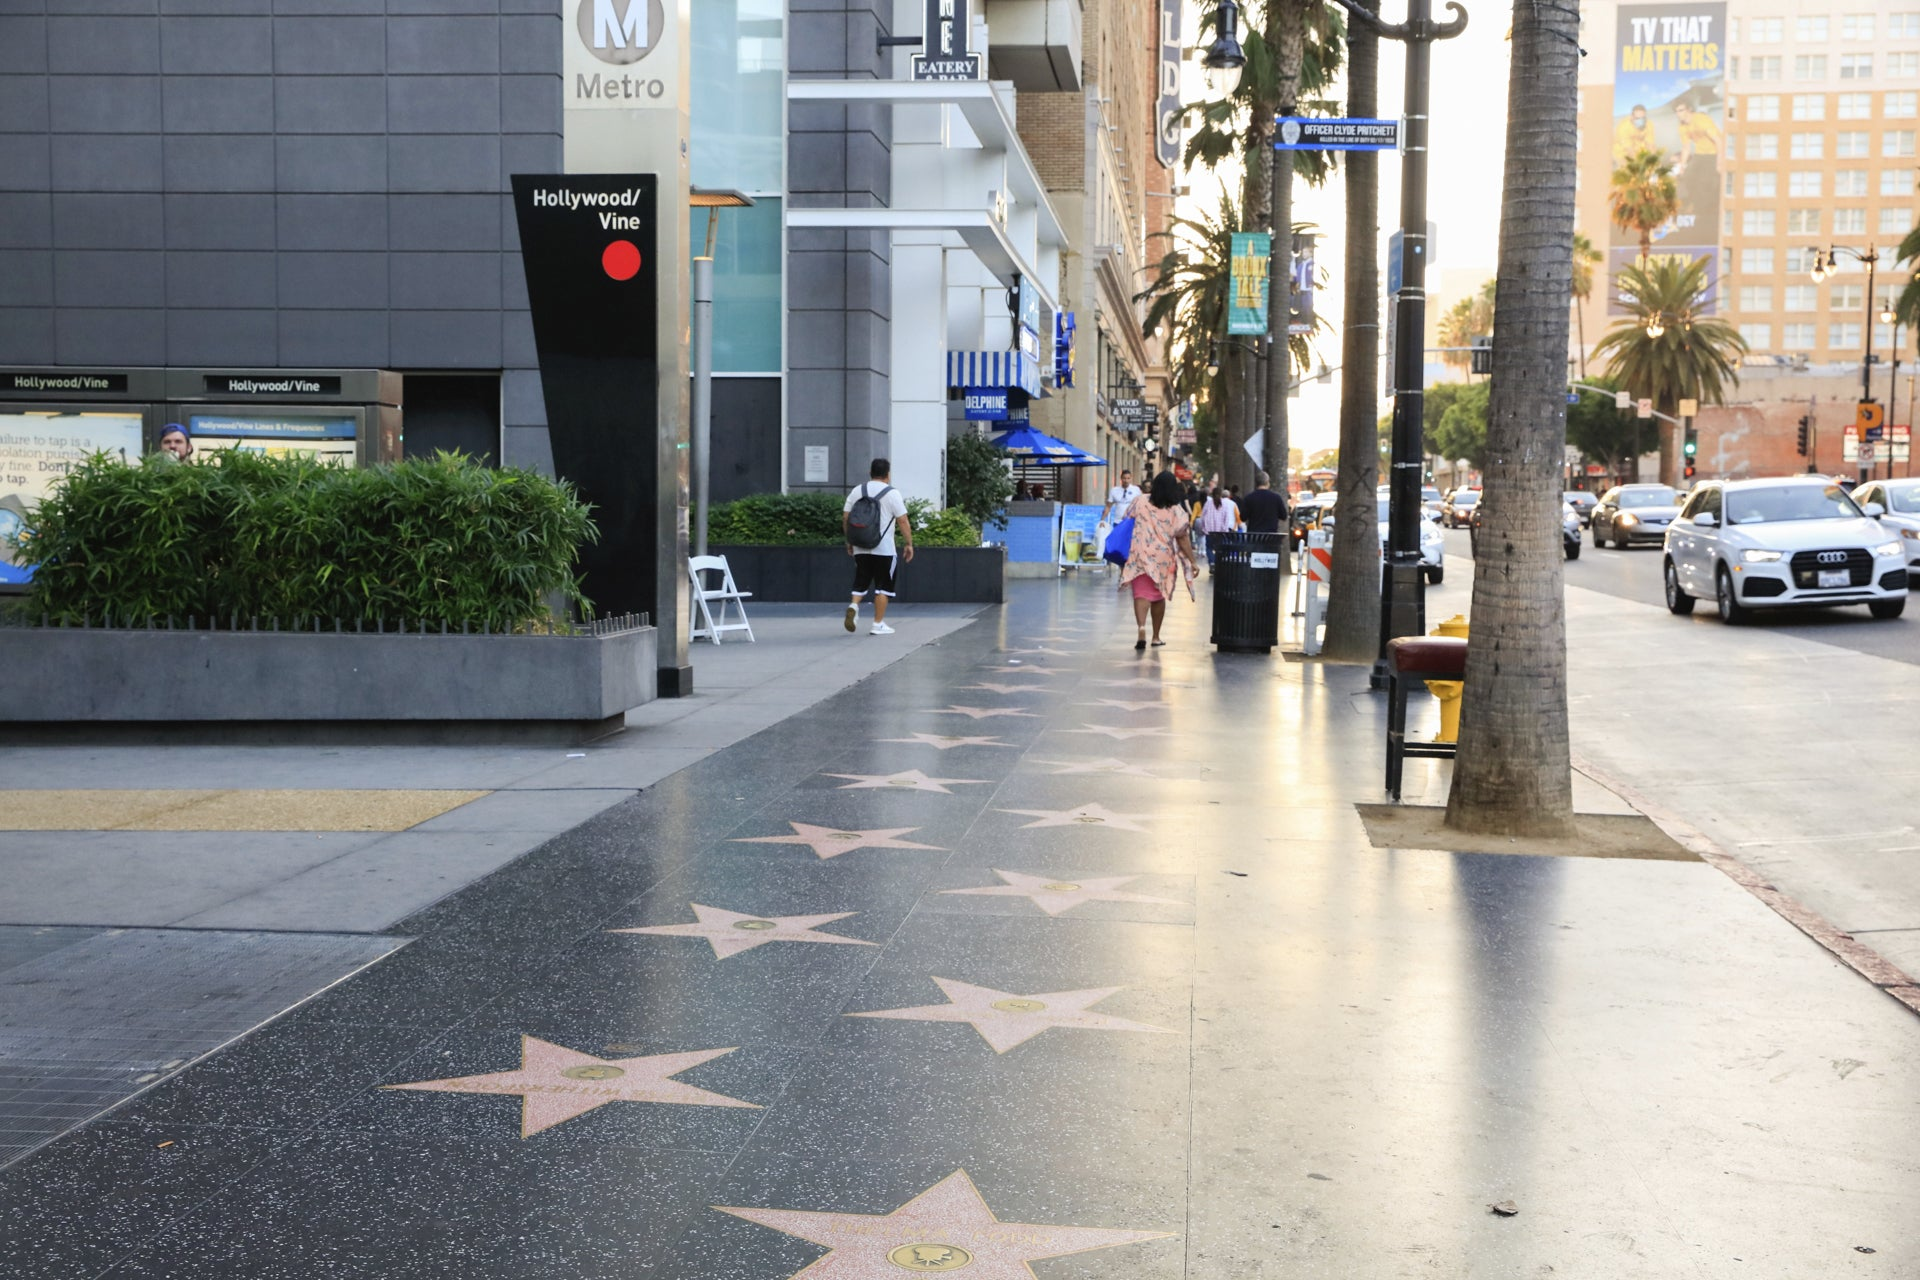 Hollywood Walk of Fame at Metro Hollywood/Vine Station